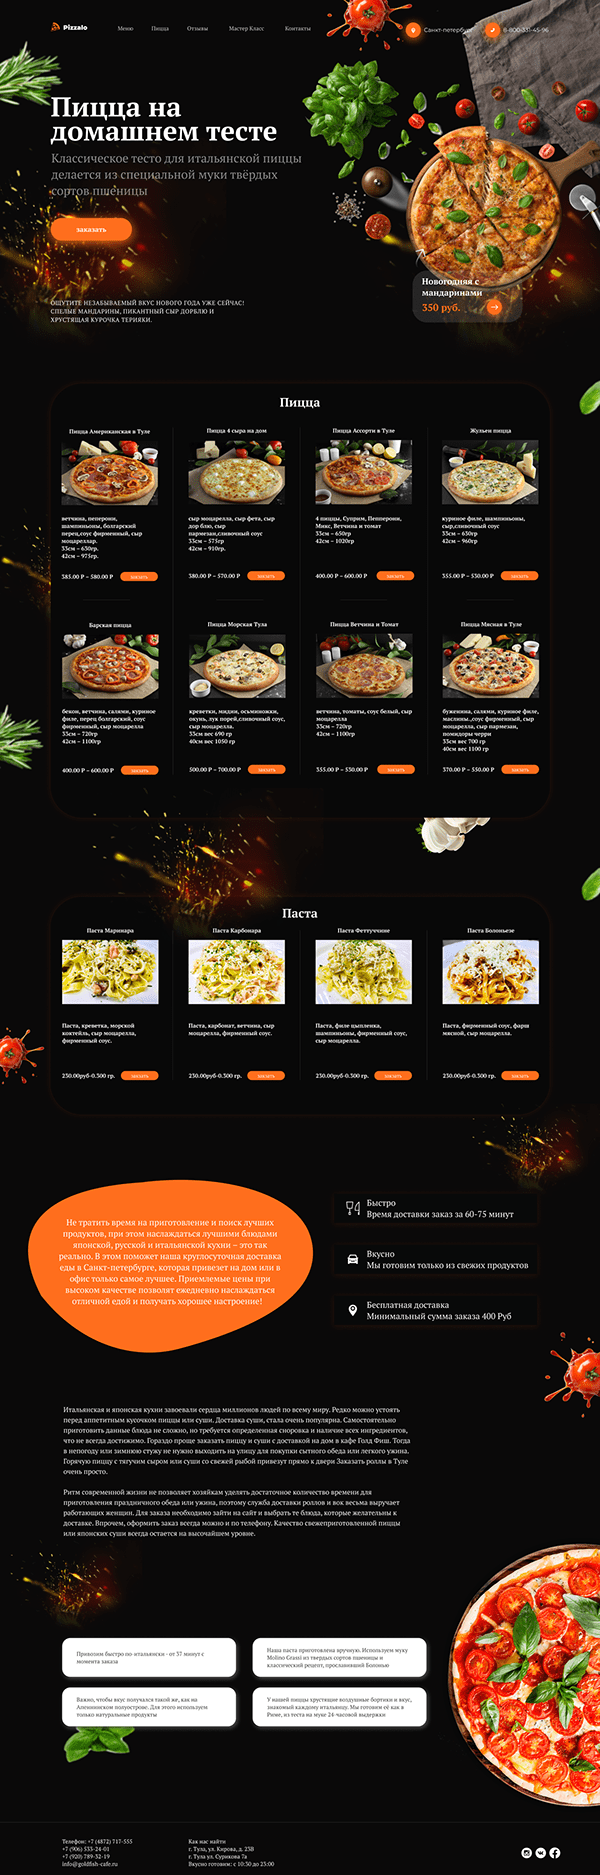 Landing Page Site Pizza